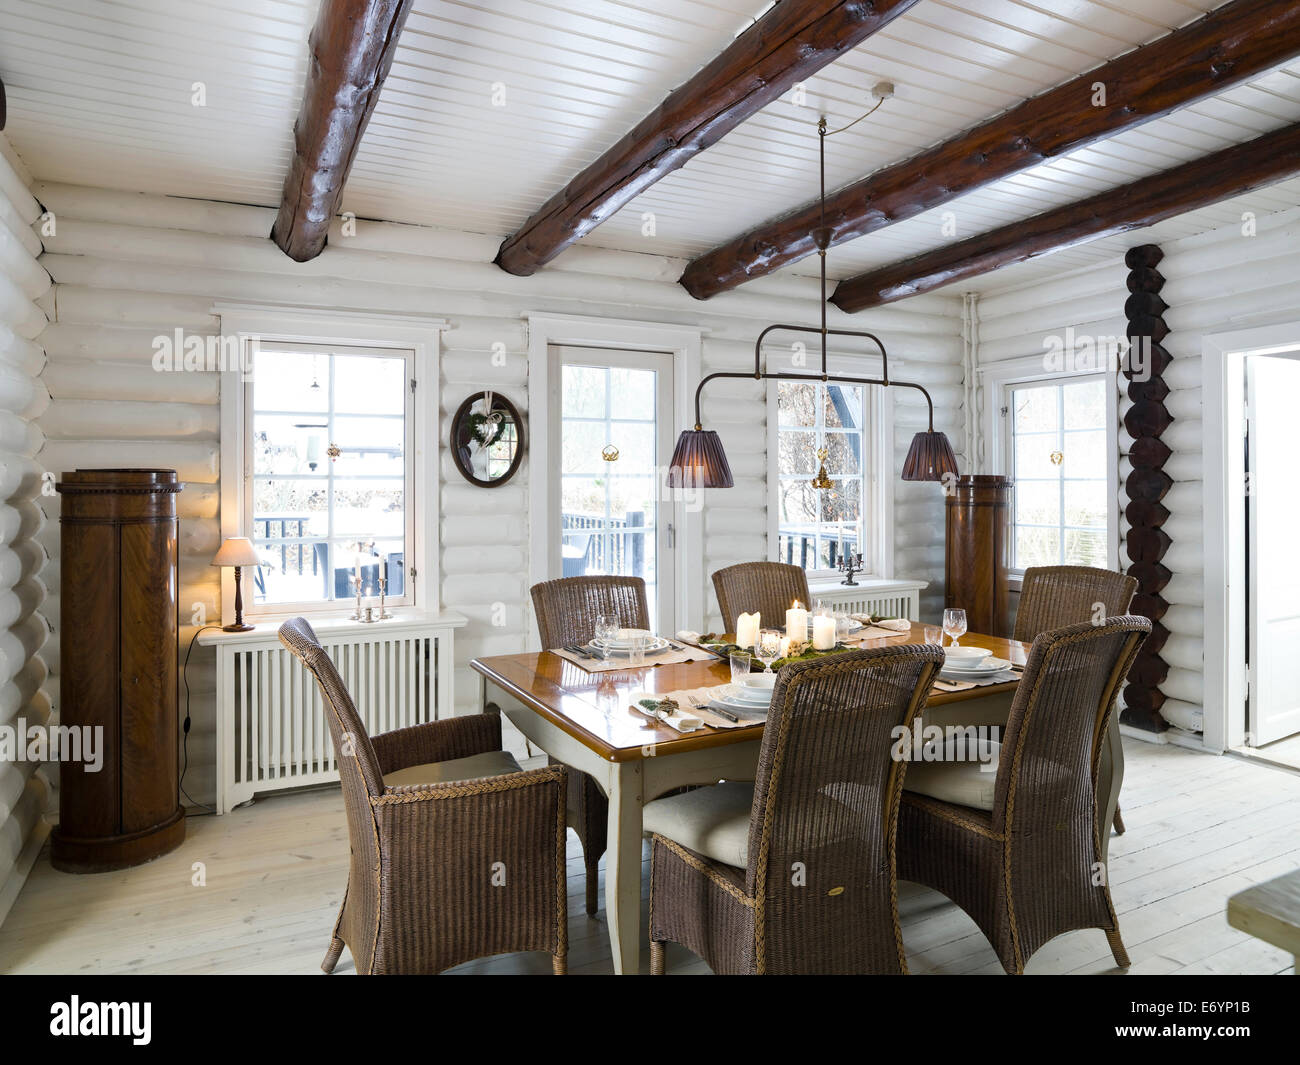 Dining room in log cabin, Copenhagen, Denmark Stock Photo, Royalty ...